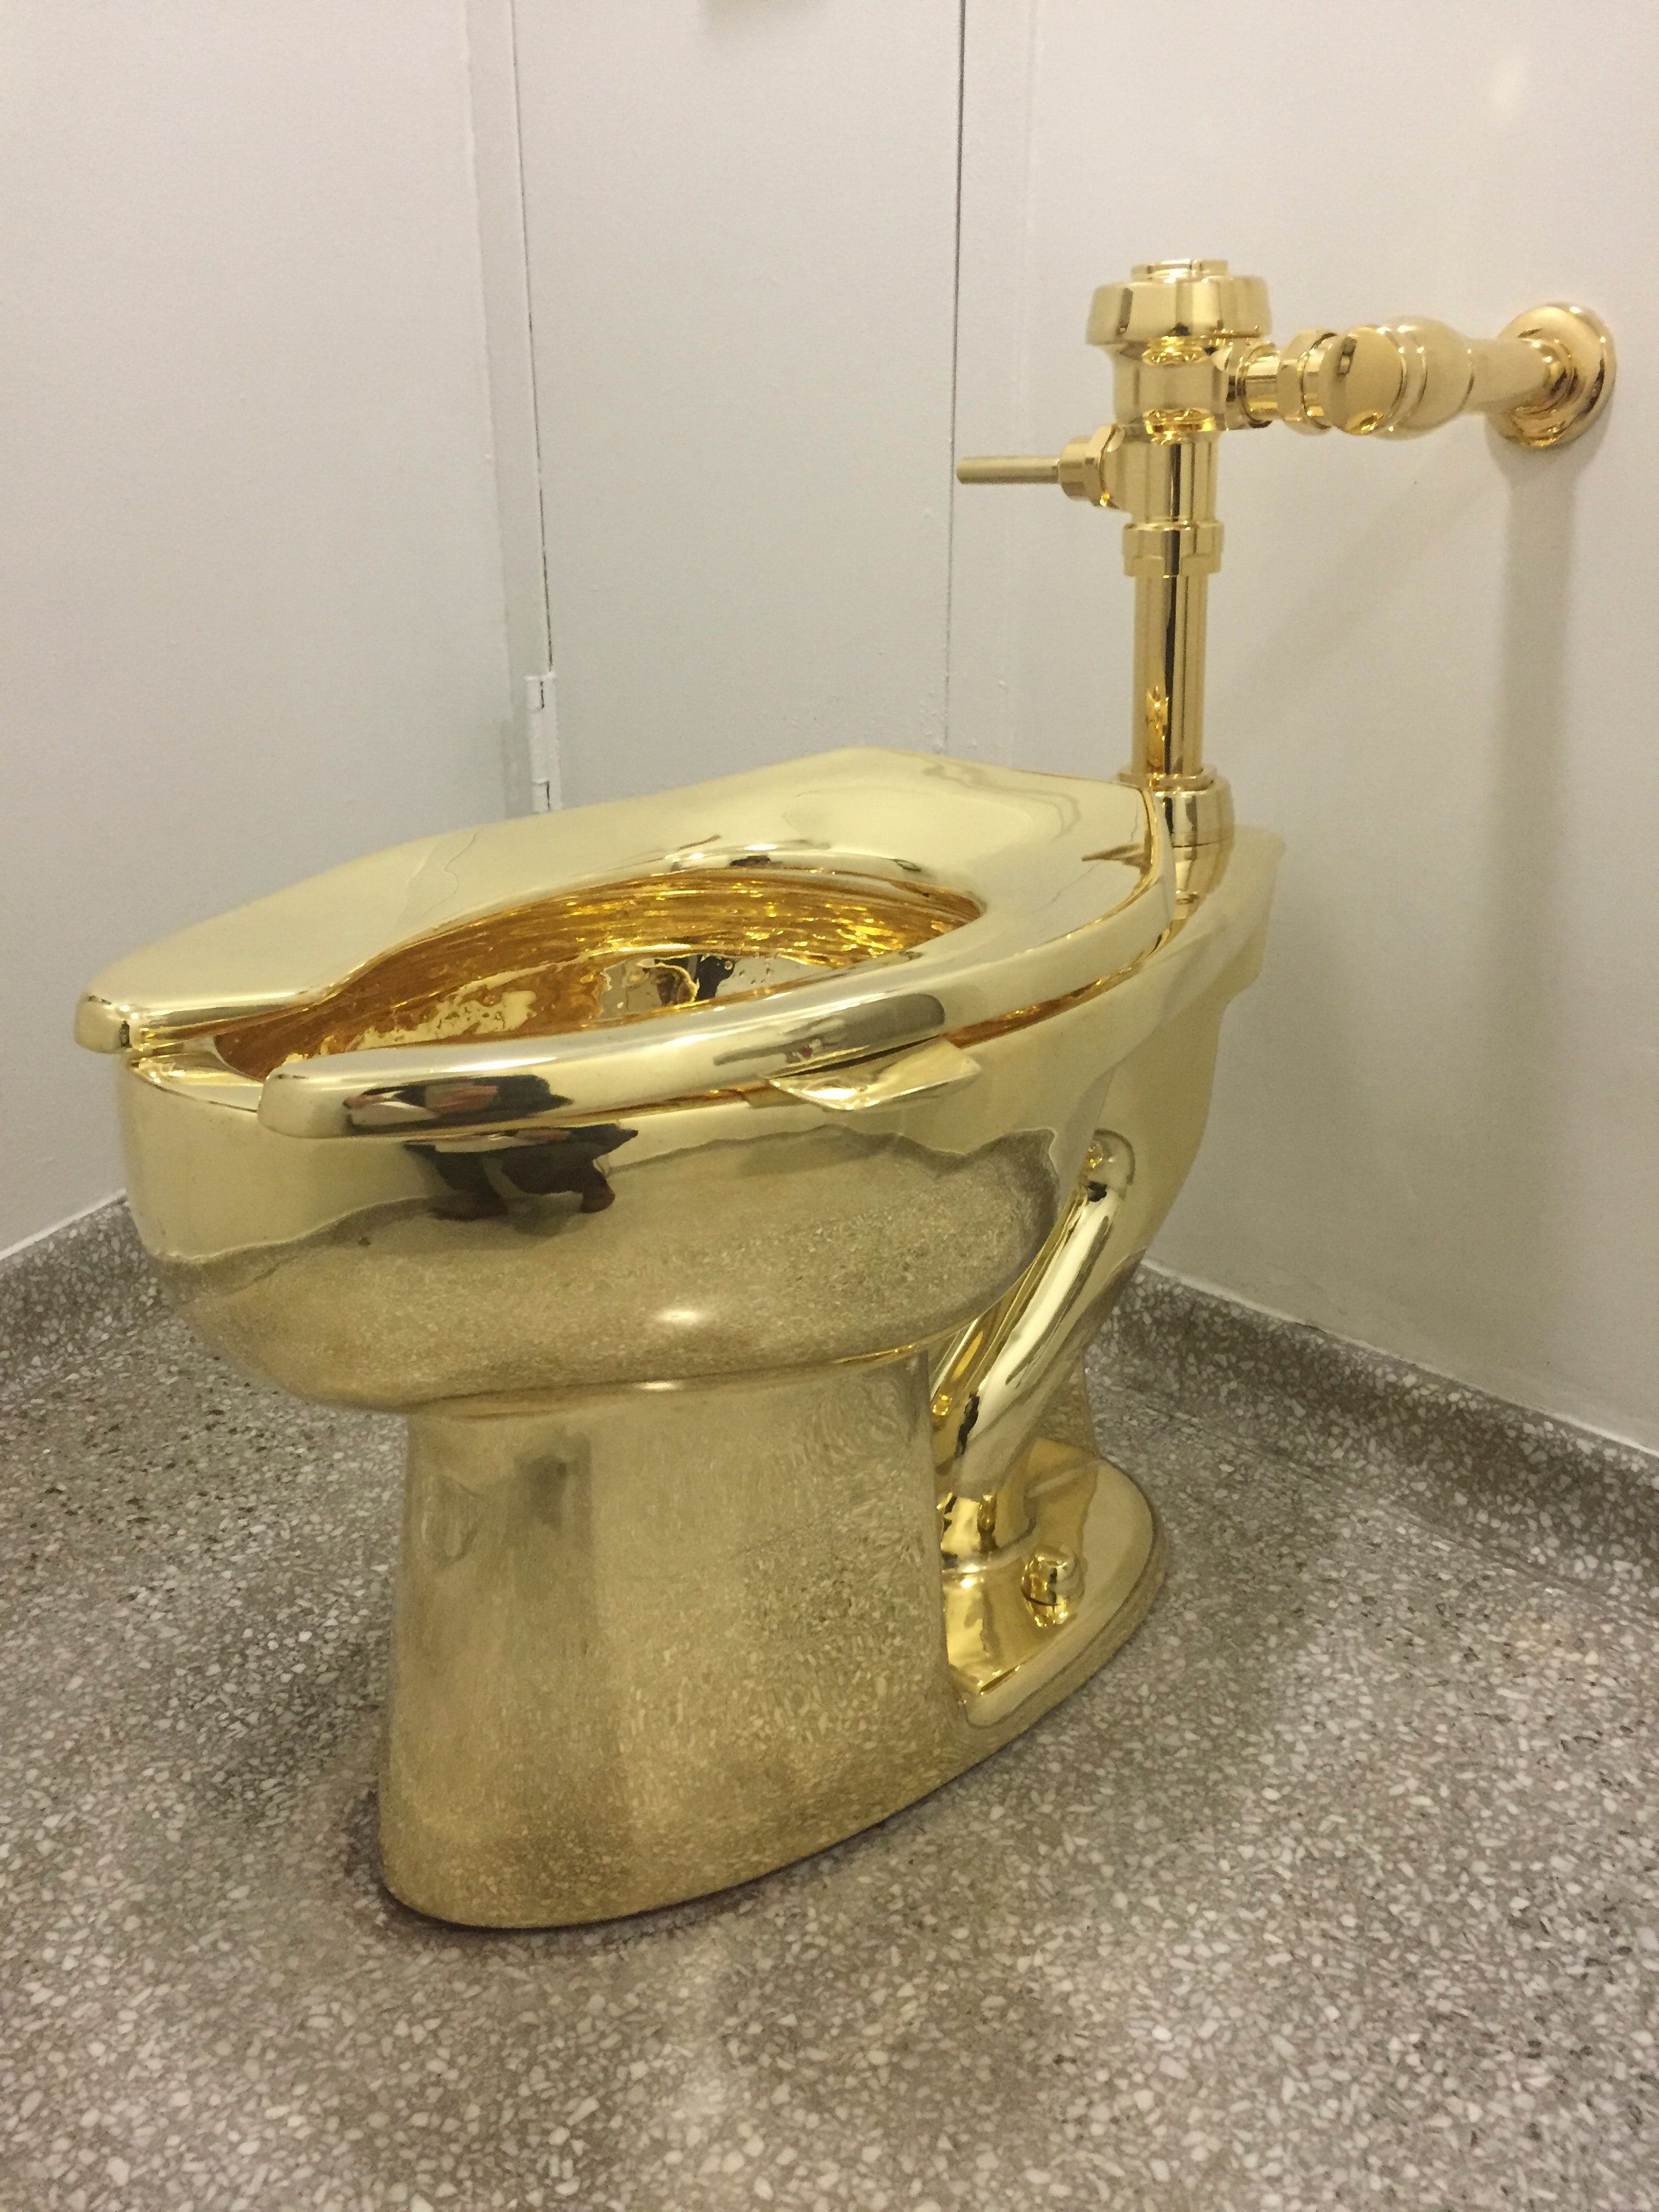 A fully functioning solid gold toilet, made by Italian artist Maurizio Cattelan, is going into public use at the Guggenheim Museum in New York on September 15, 2016.  A guard will be stationed outside the bathroom to protect the work, entitled 'America', which recalls Marcel Duchamp's famous work, 'Fountain'. / AFP / William EDWARDS        (Photo credit should read WILLIAM EDWARDS/AFP/Getty Images)